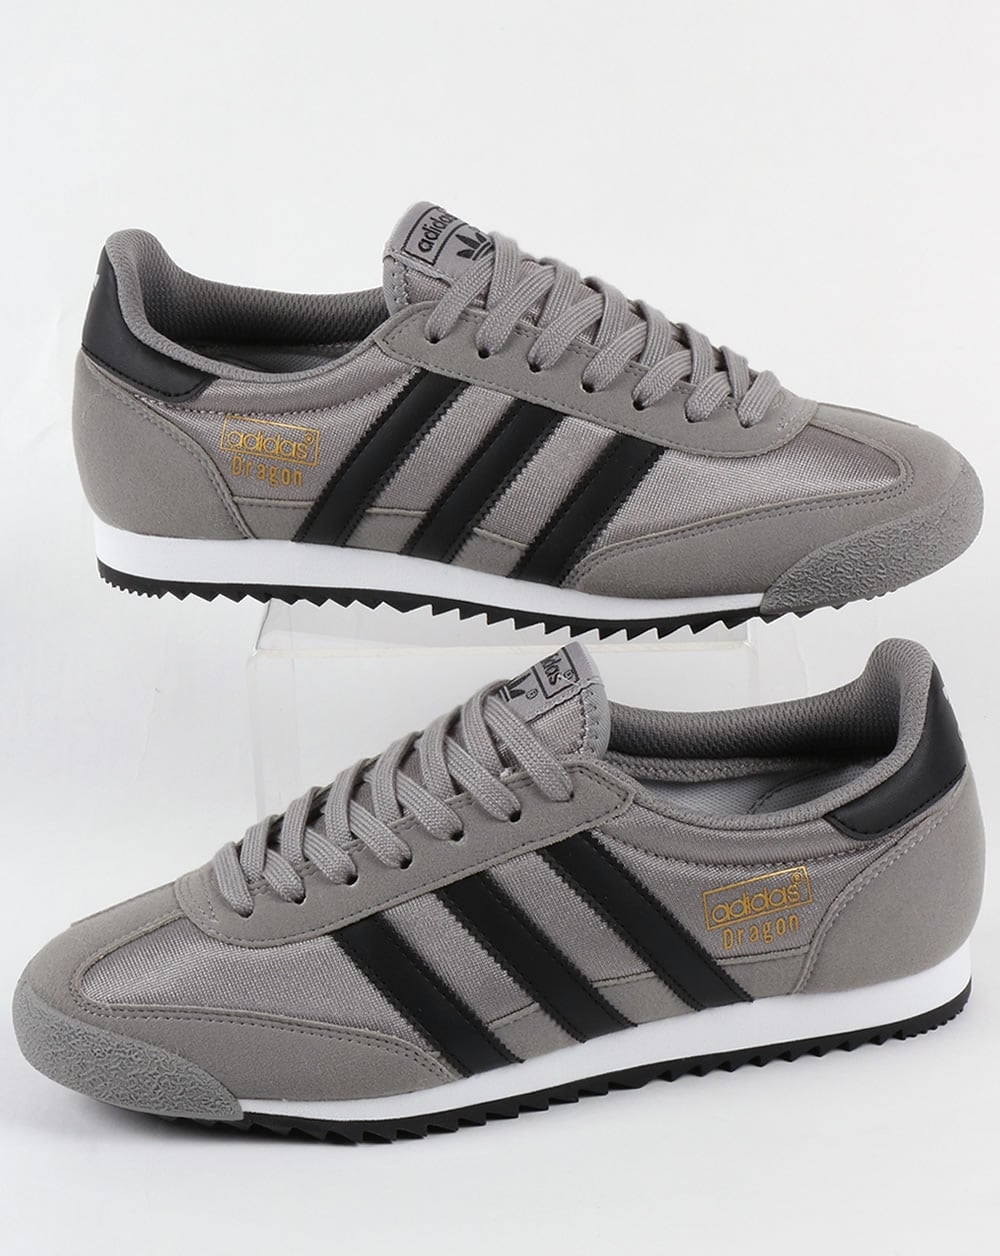 detailed look 679e6 00525 adidas Trainers Adidas Dragon OG Trainers Solid Grey Black